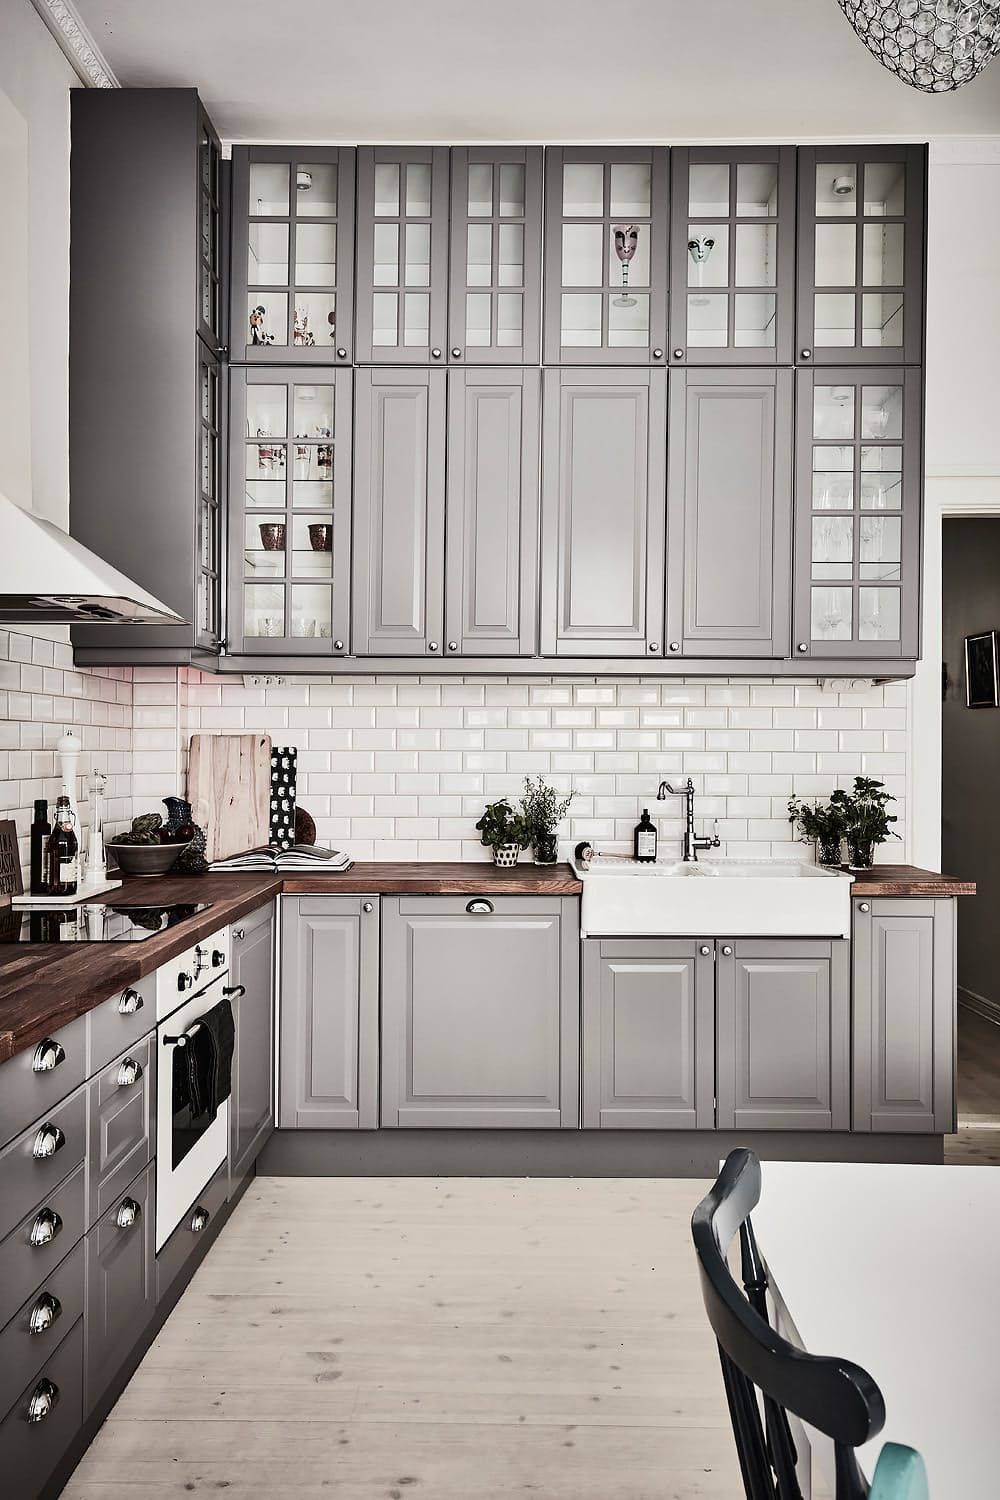 Unique Ikea Kitchen Cabinets Good Or Bad The Brilliant And Also Interesting Ikea Kitchen Cabinets Good Or Bad Intended For Inspire Your Keuken Ideeen Keuken